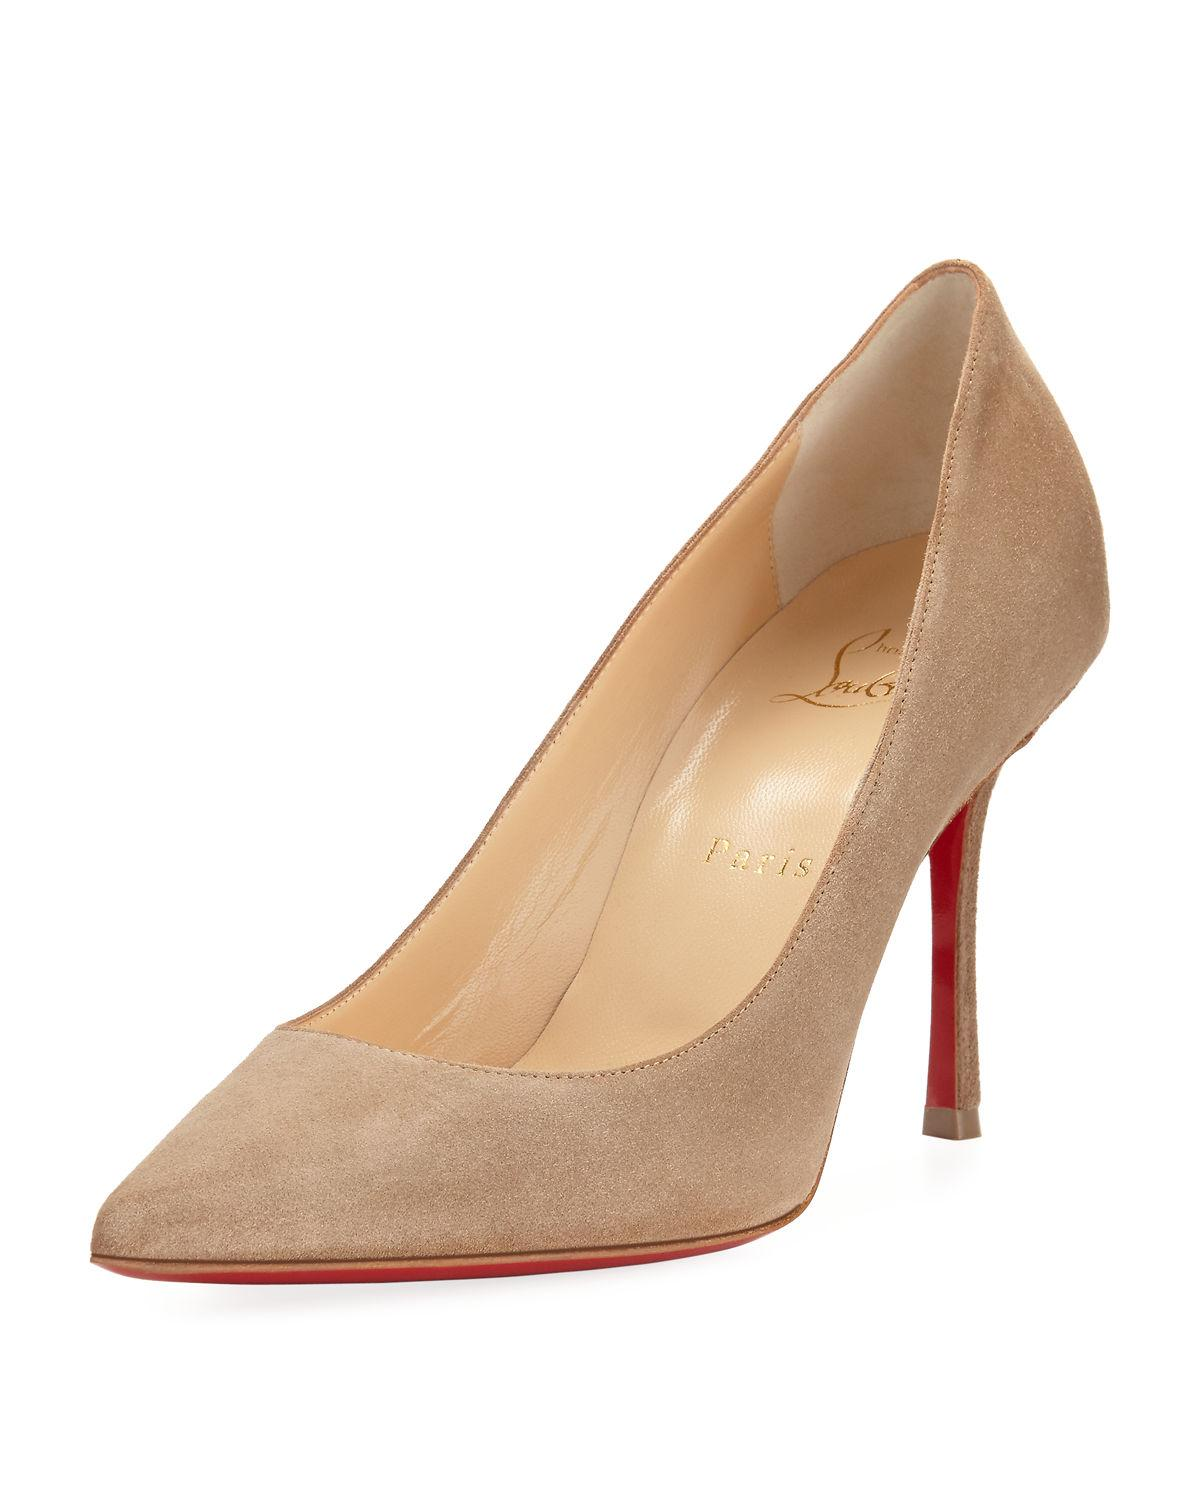 Louboutin Style Shoes For Sale